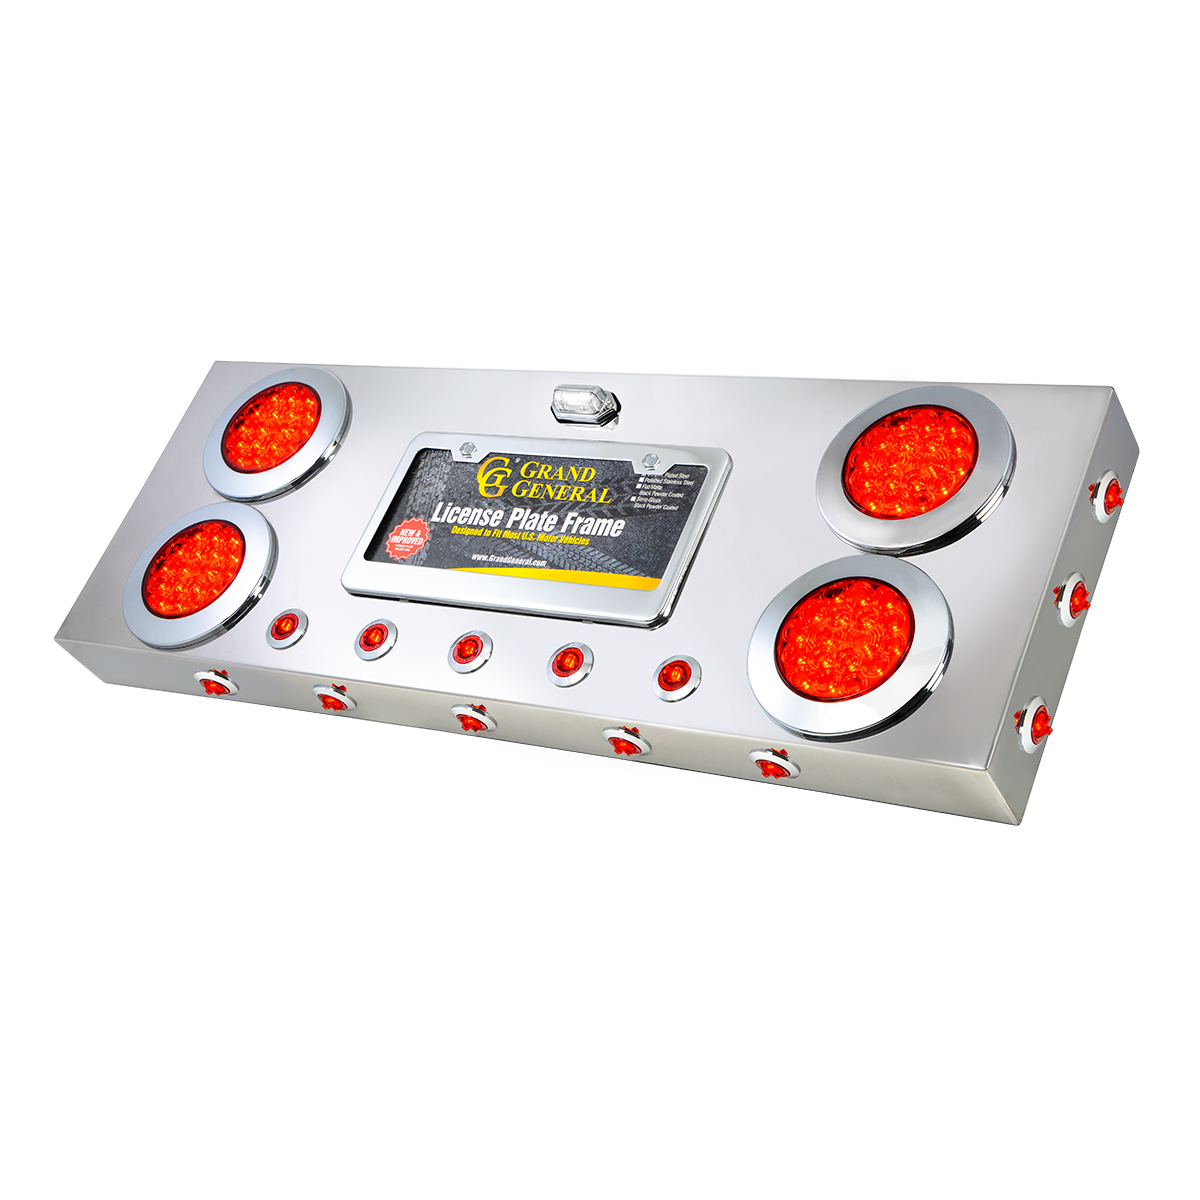 "91302 Stainless Steel Rear Center Light Panel with 4"" & 1"" Dual Function LEDs, License Plate and Under Glow Effect"